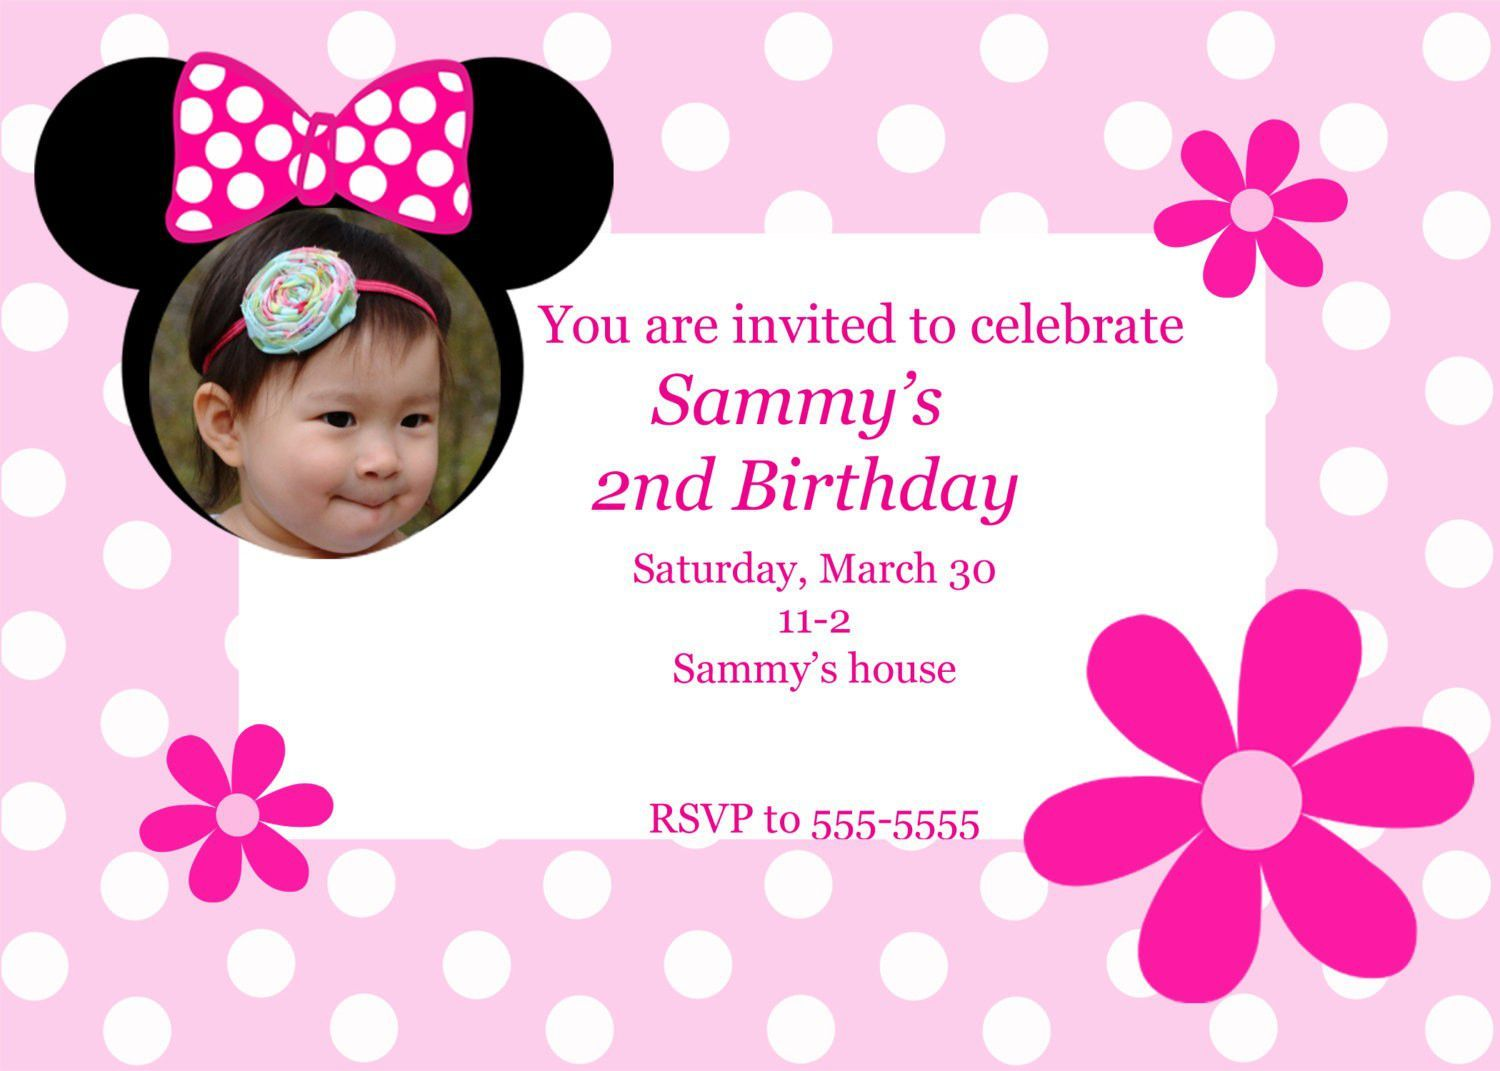 invitations-for-girls-and-birthday-party-best-sexy-girl-porono-image-in-banglai